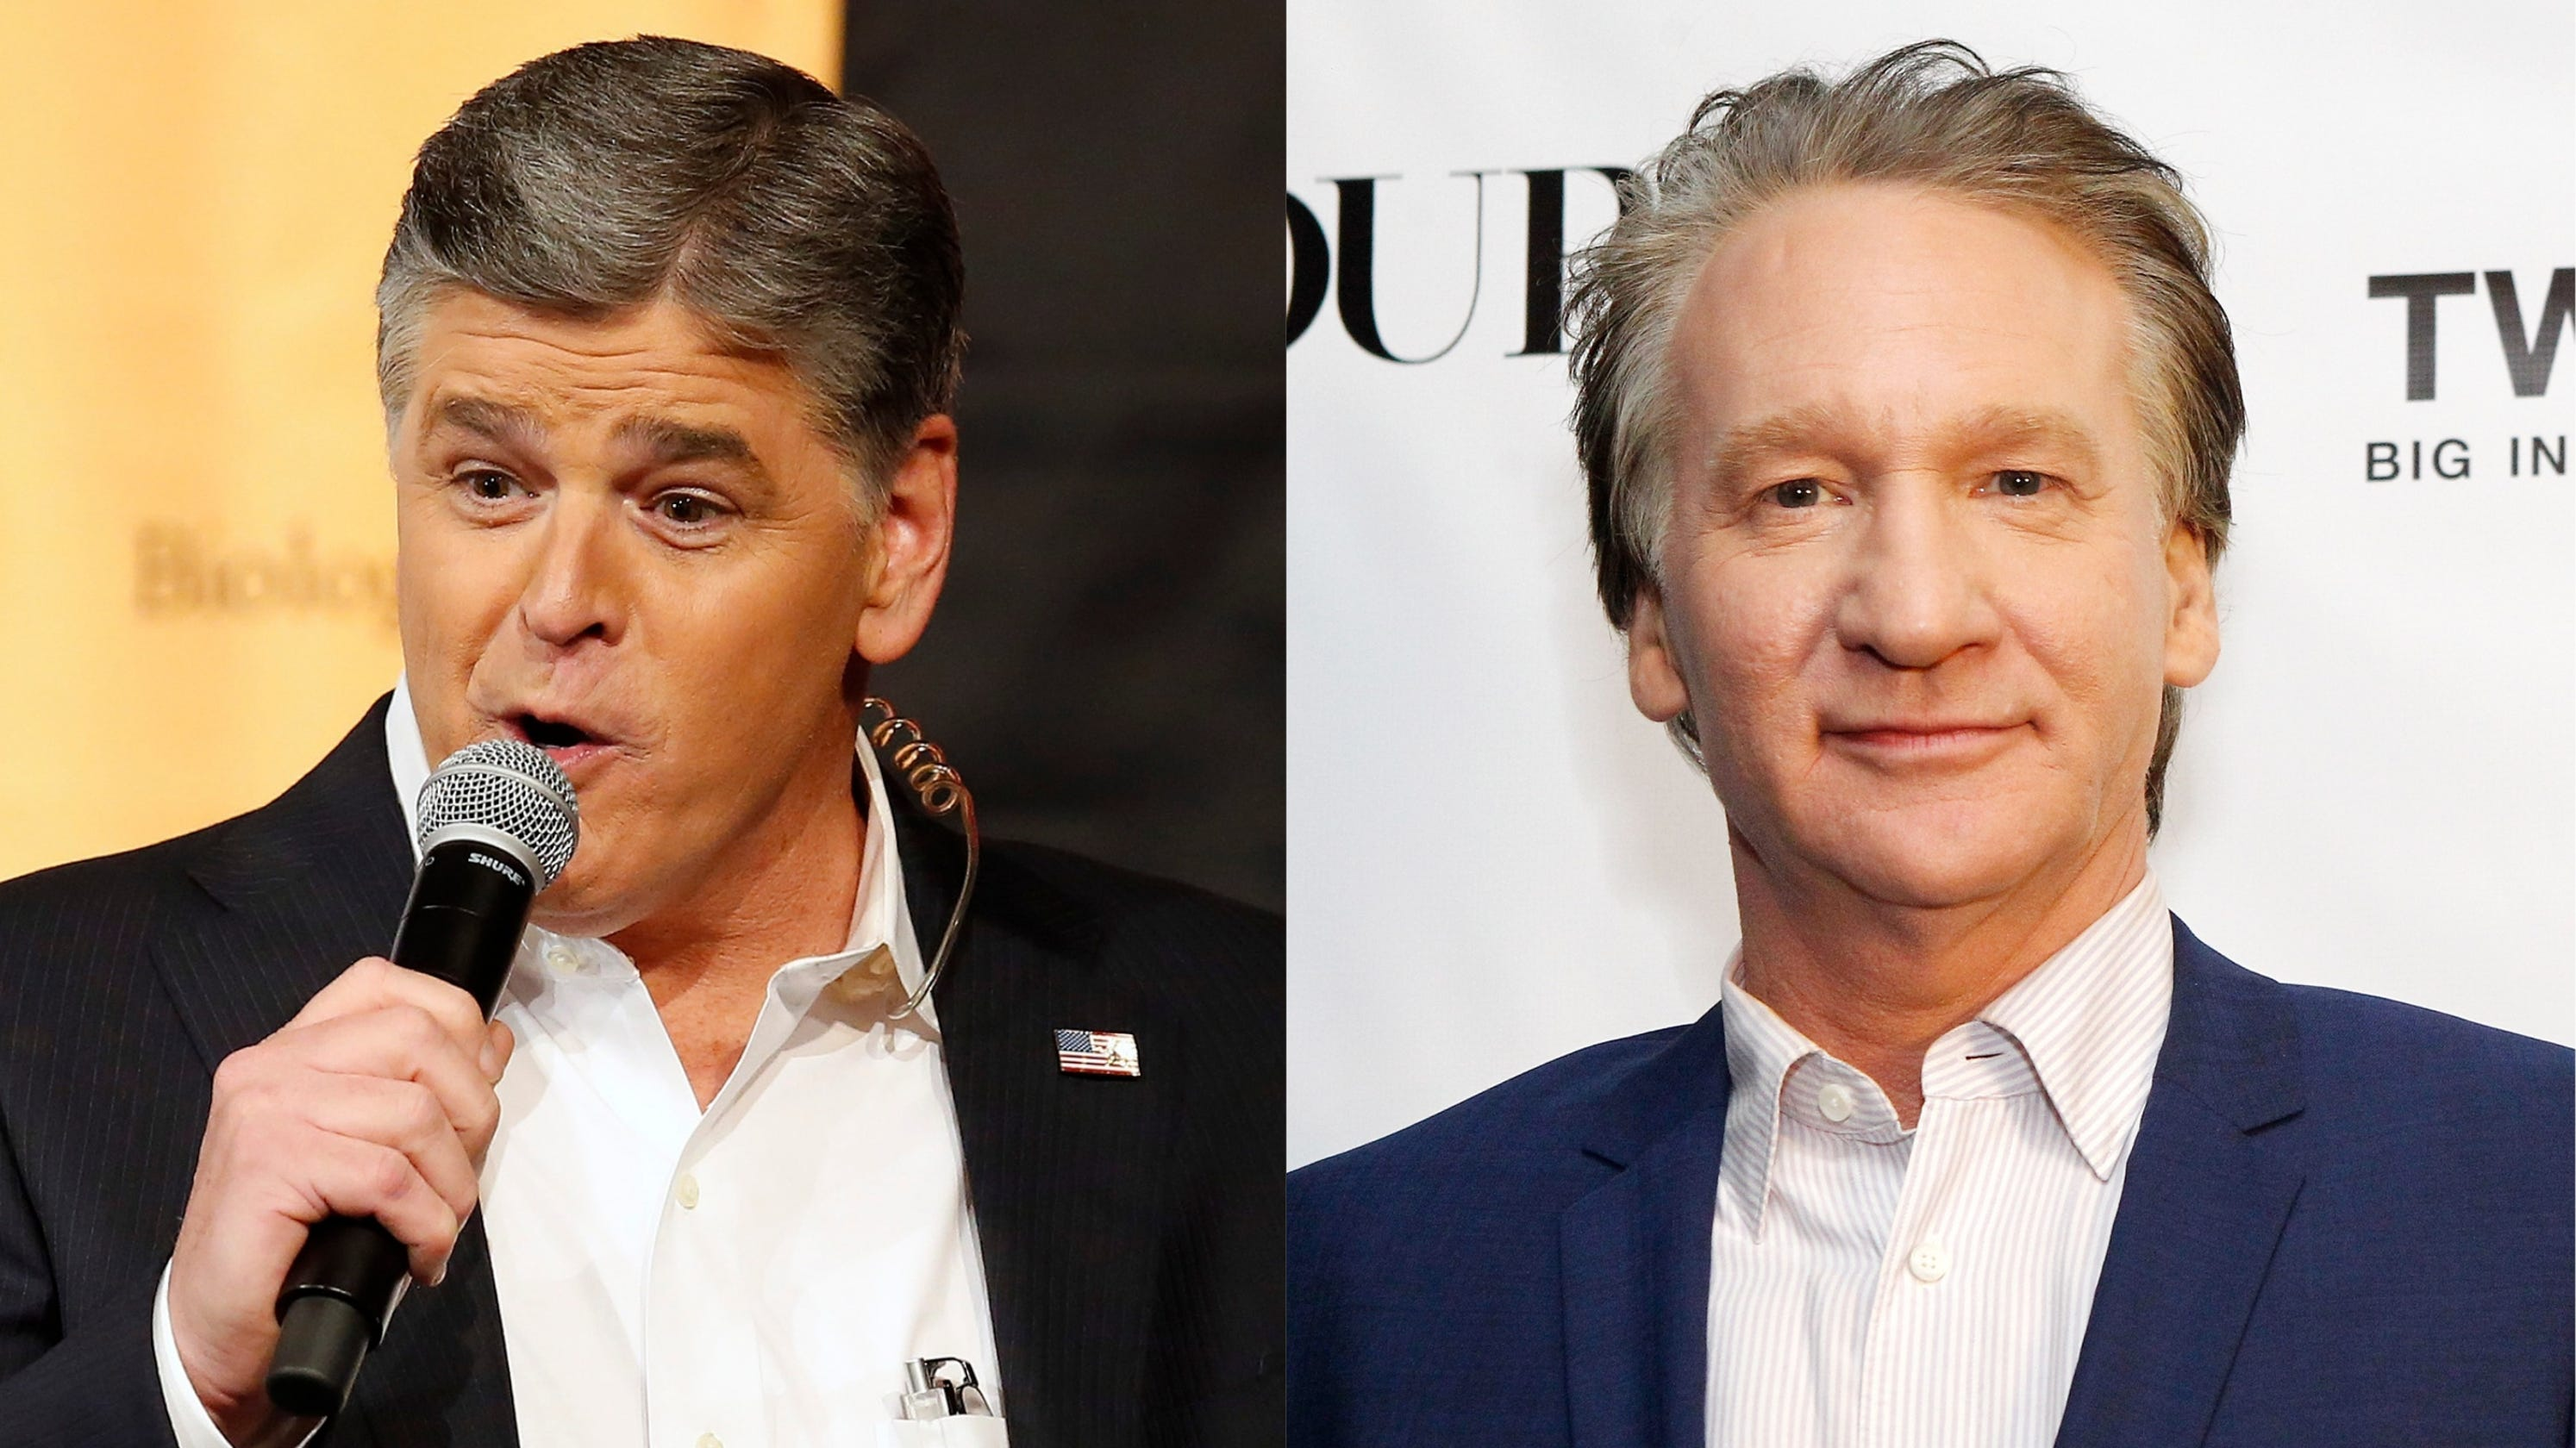 'Keep your big mouth shut': Sean Hannity rips Bill Maher for remarks on David Koch's death